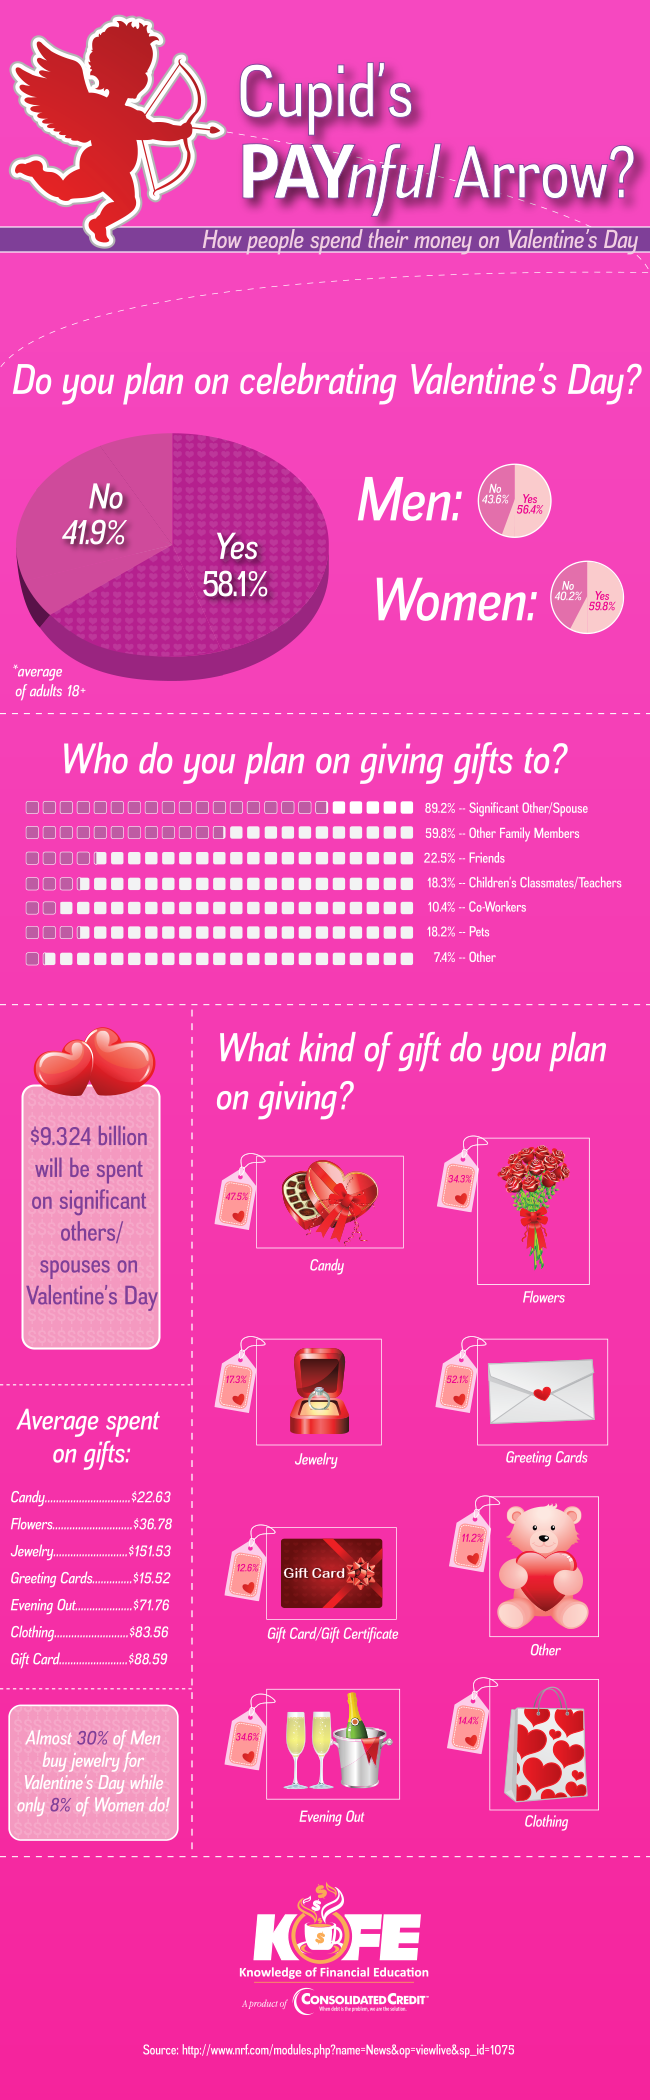 Cupid's Painful Arrow infographic